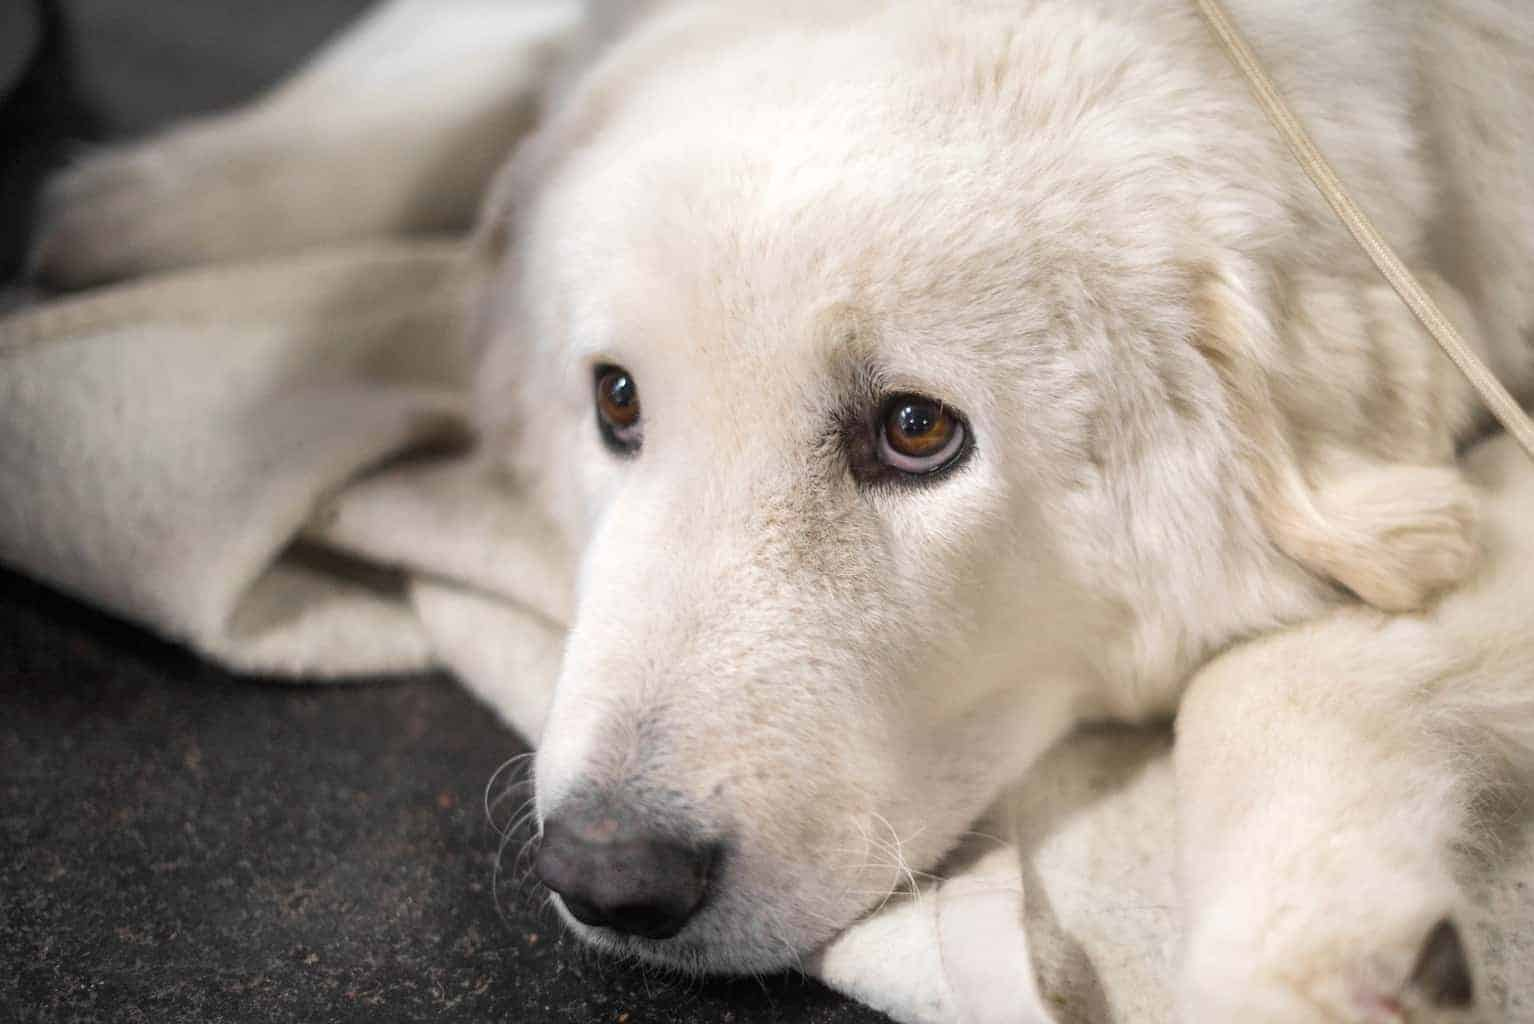 Hungarian Kuvasz dog portrait with beautiful intelligent eyes. It is livestock dog.